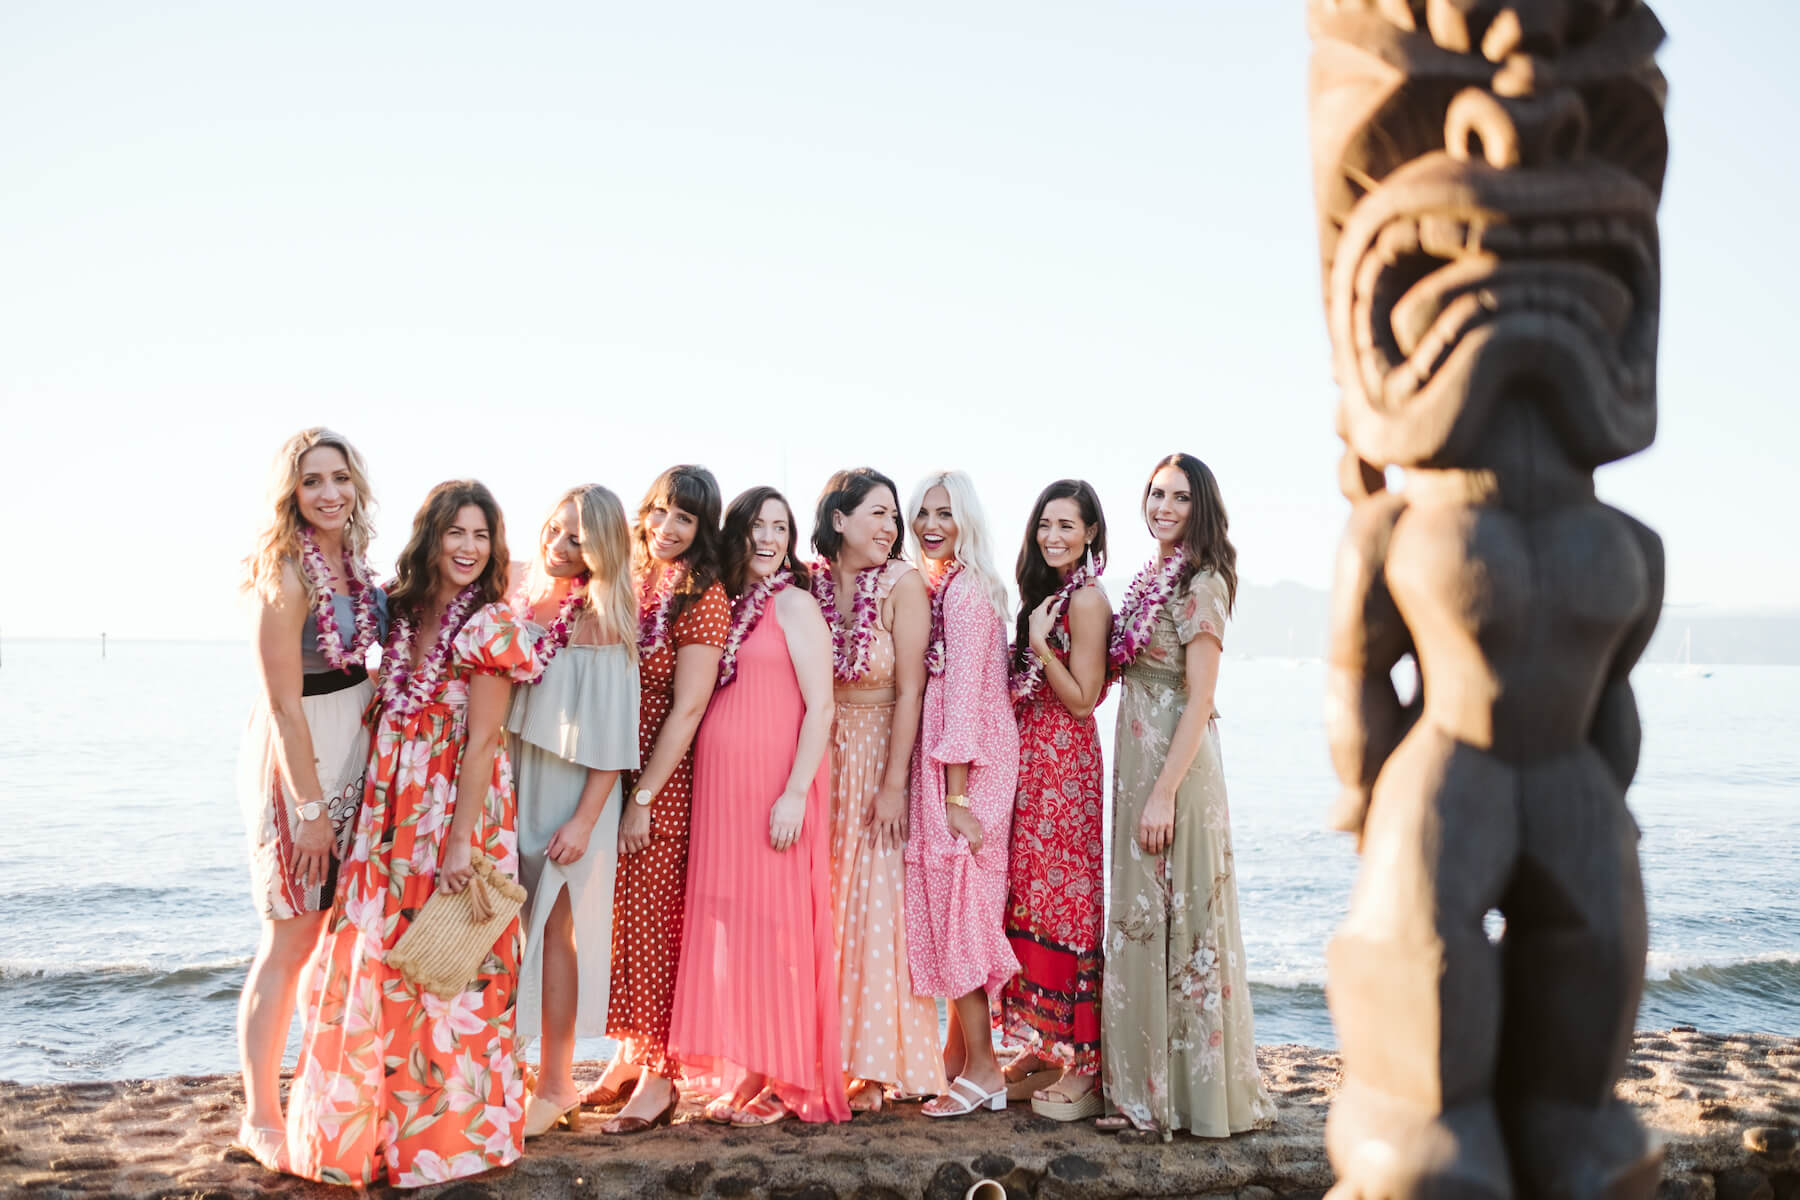 9 girlfriends on a girls trip are standing on the beach wearing colorful dresses and having fun in Maui, Hawaii